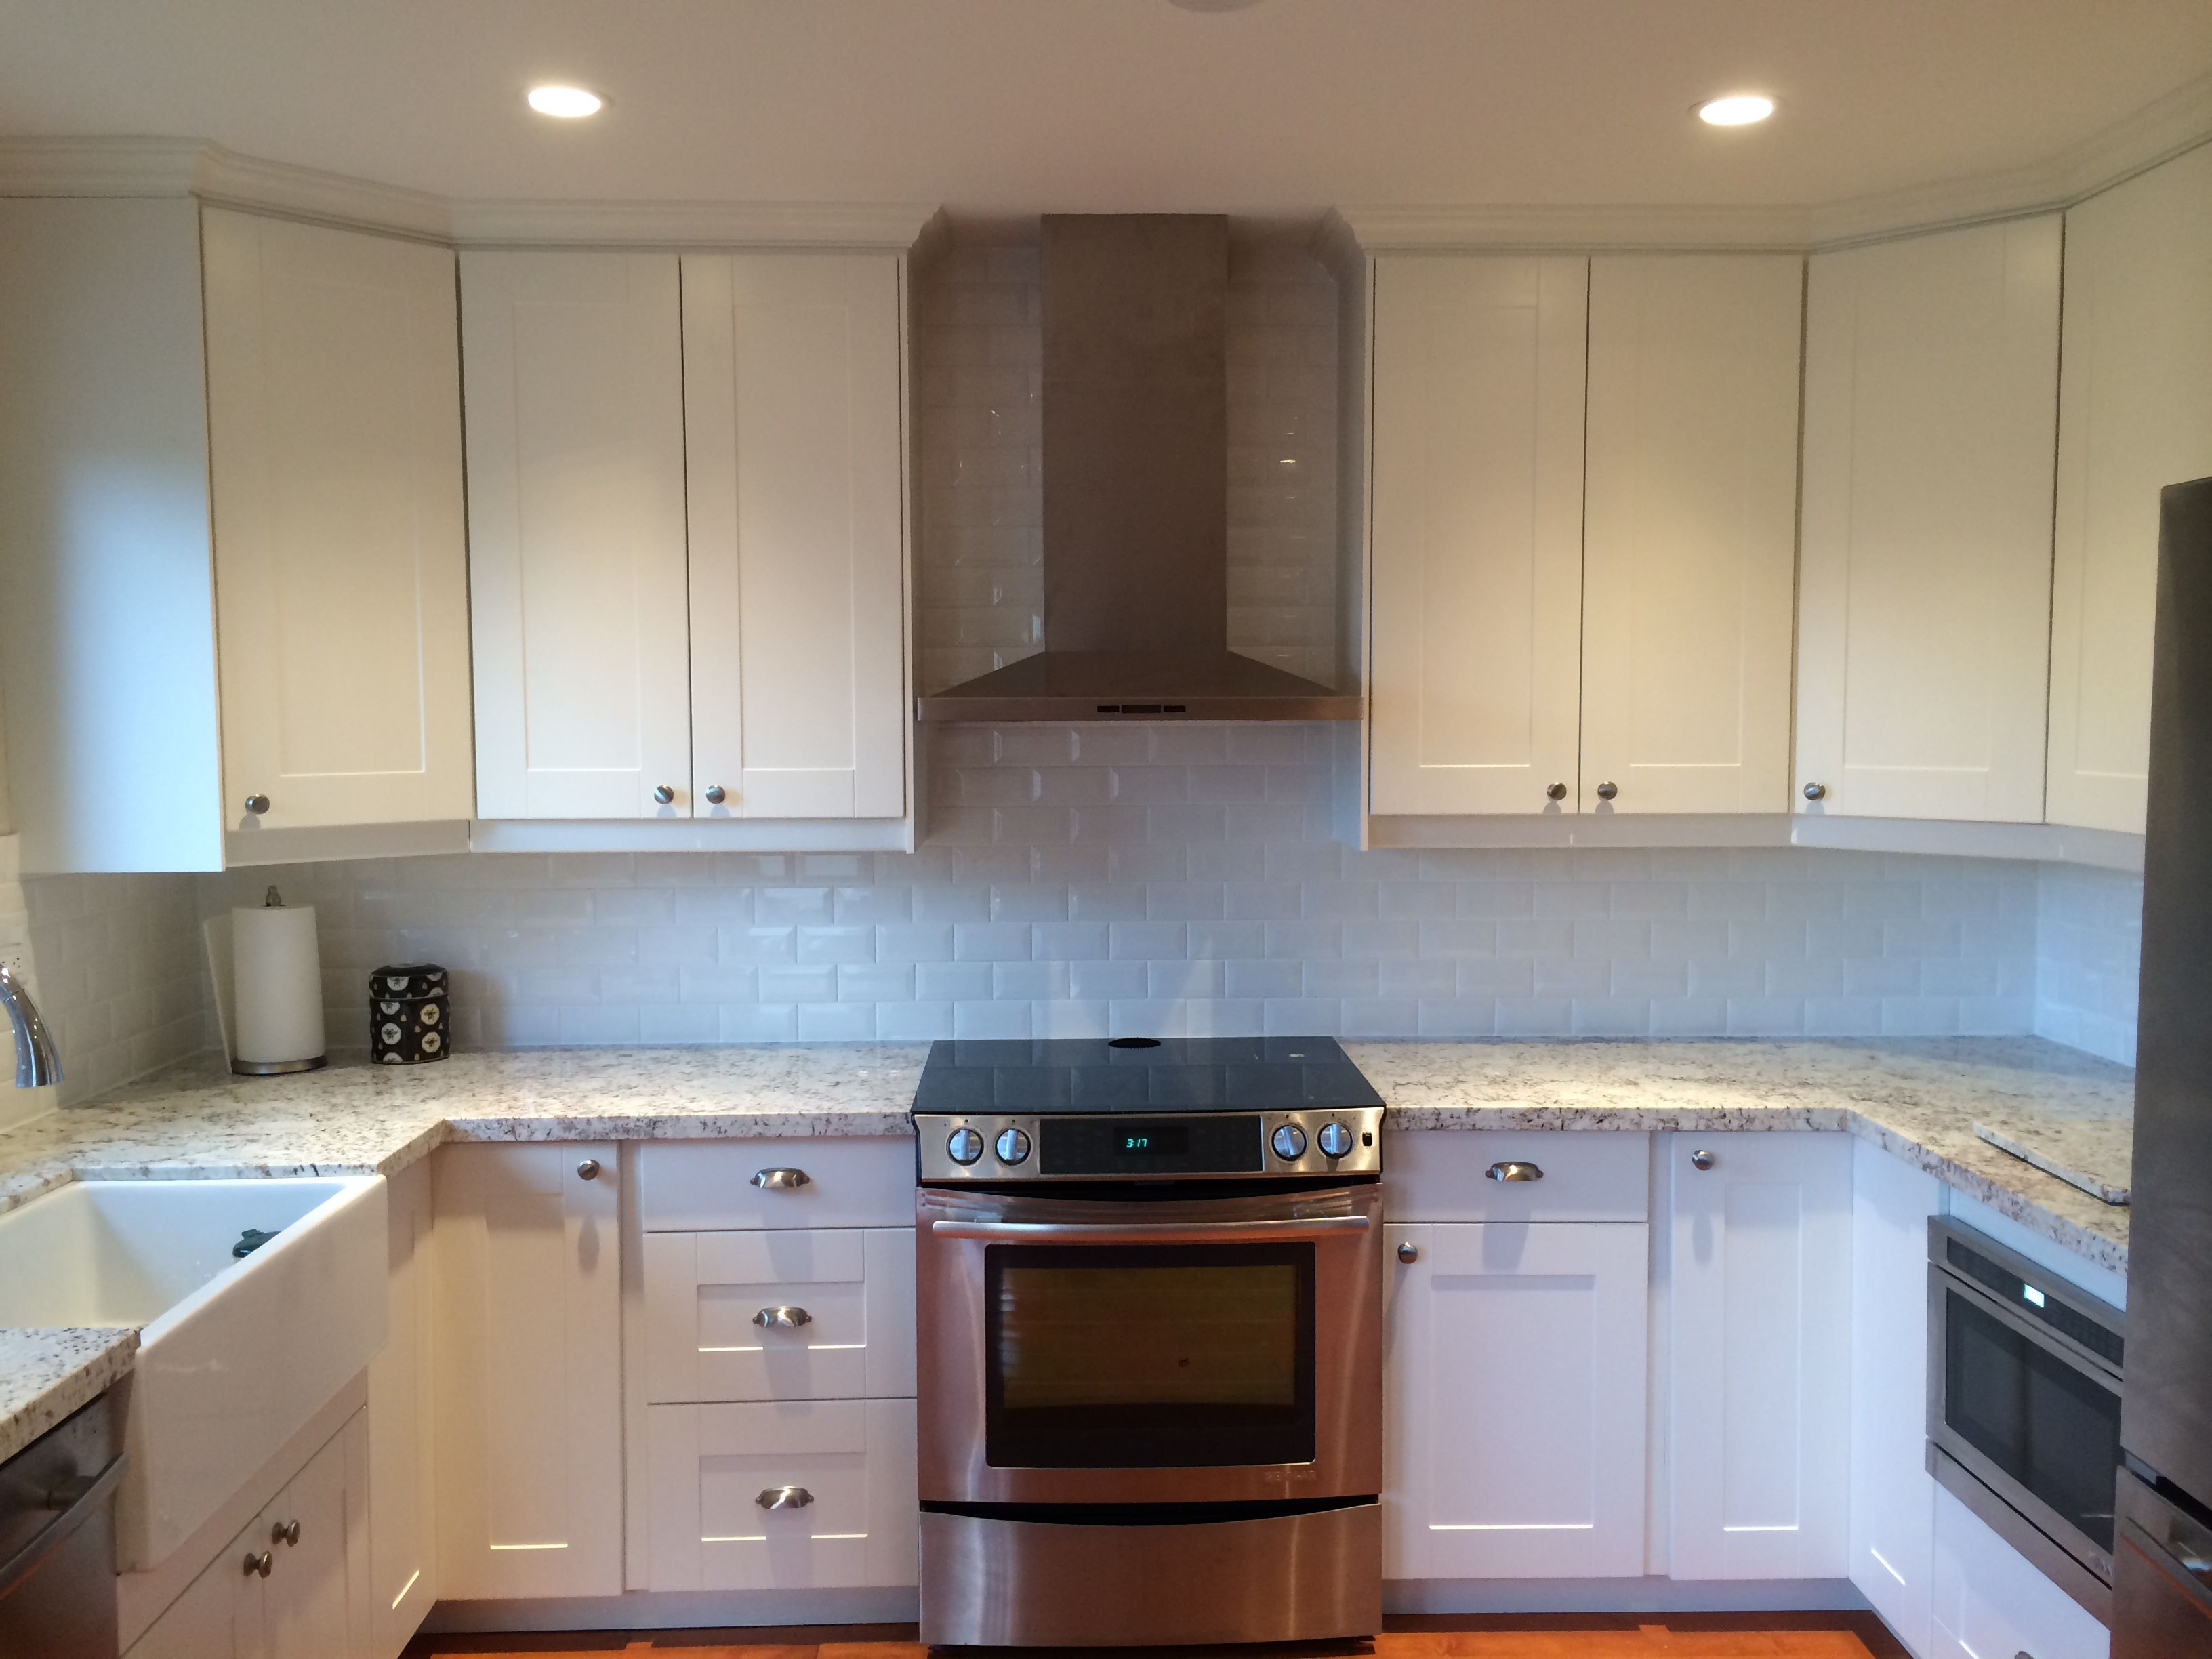 A Refreshing Ikea Facelift For A Canadian Kitchen Kitchen Cabinetry Design Ikea Kitchen Design Kitchen Cabinets